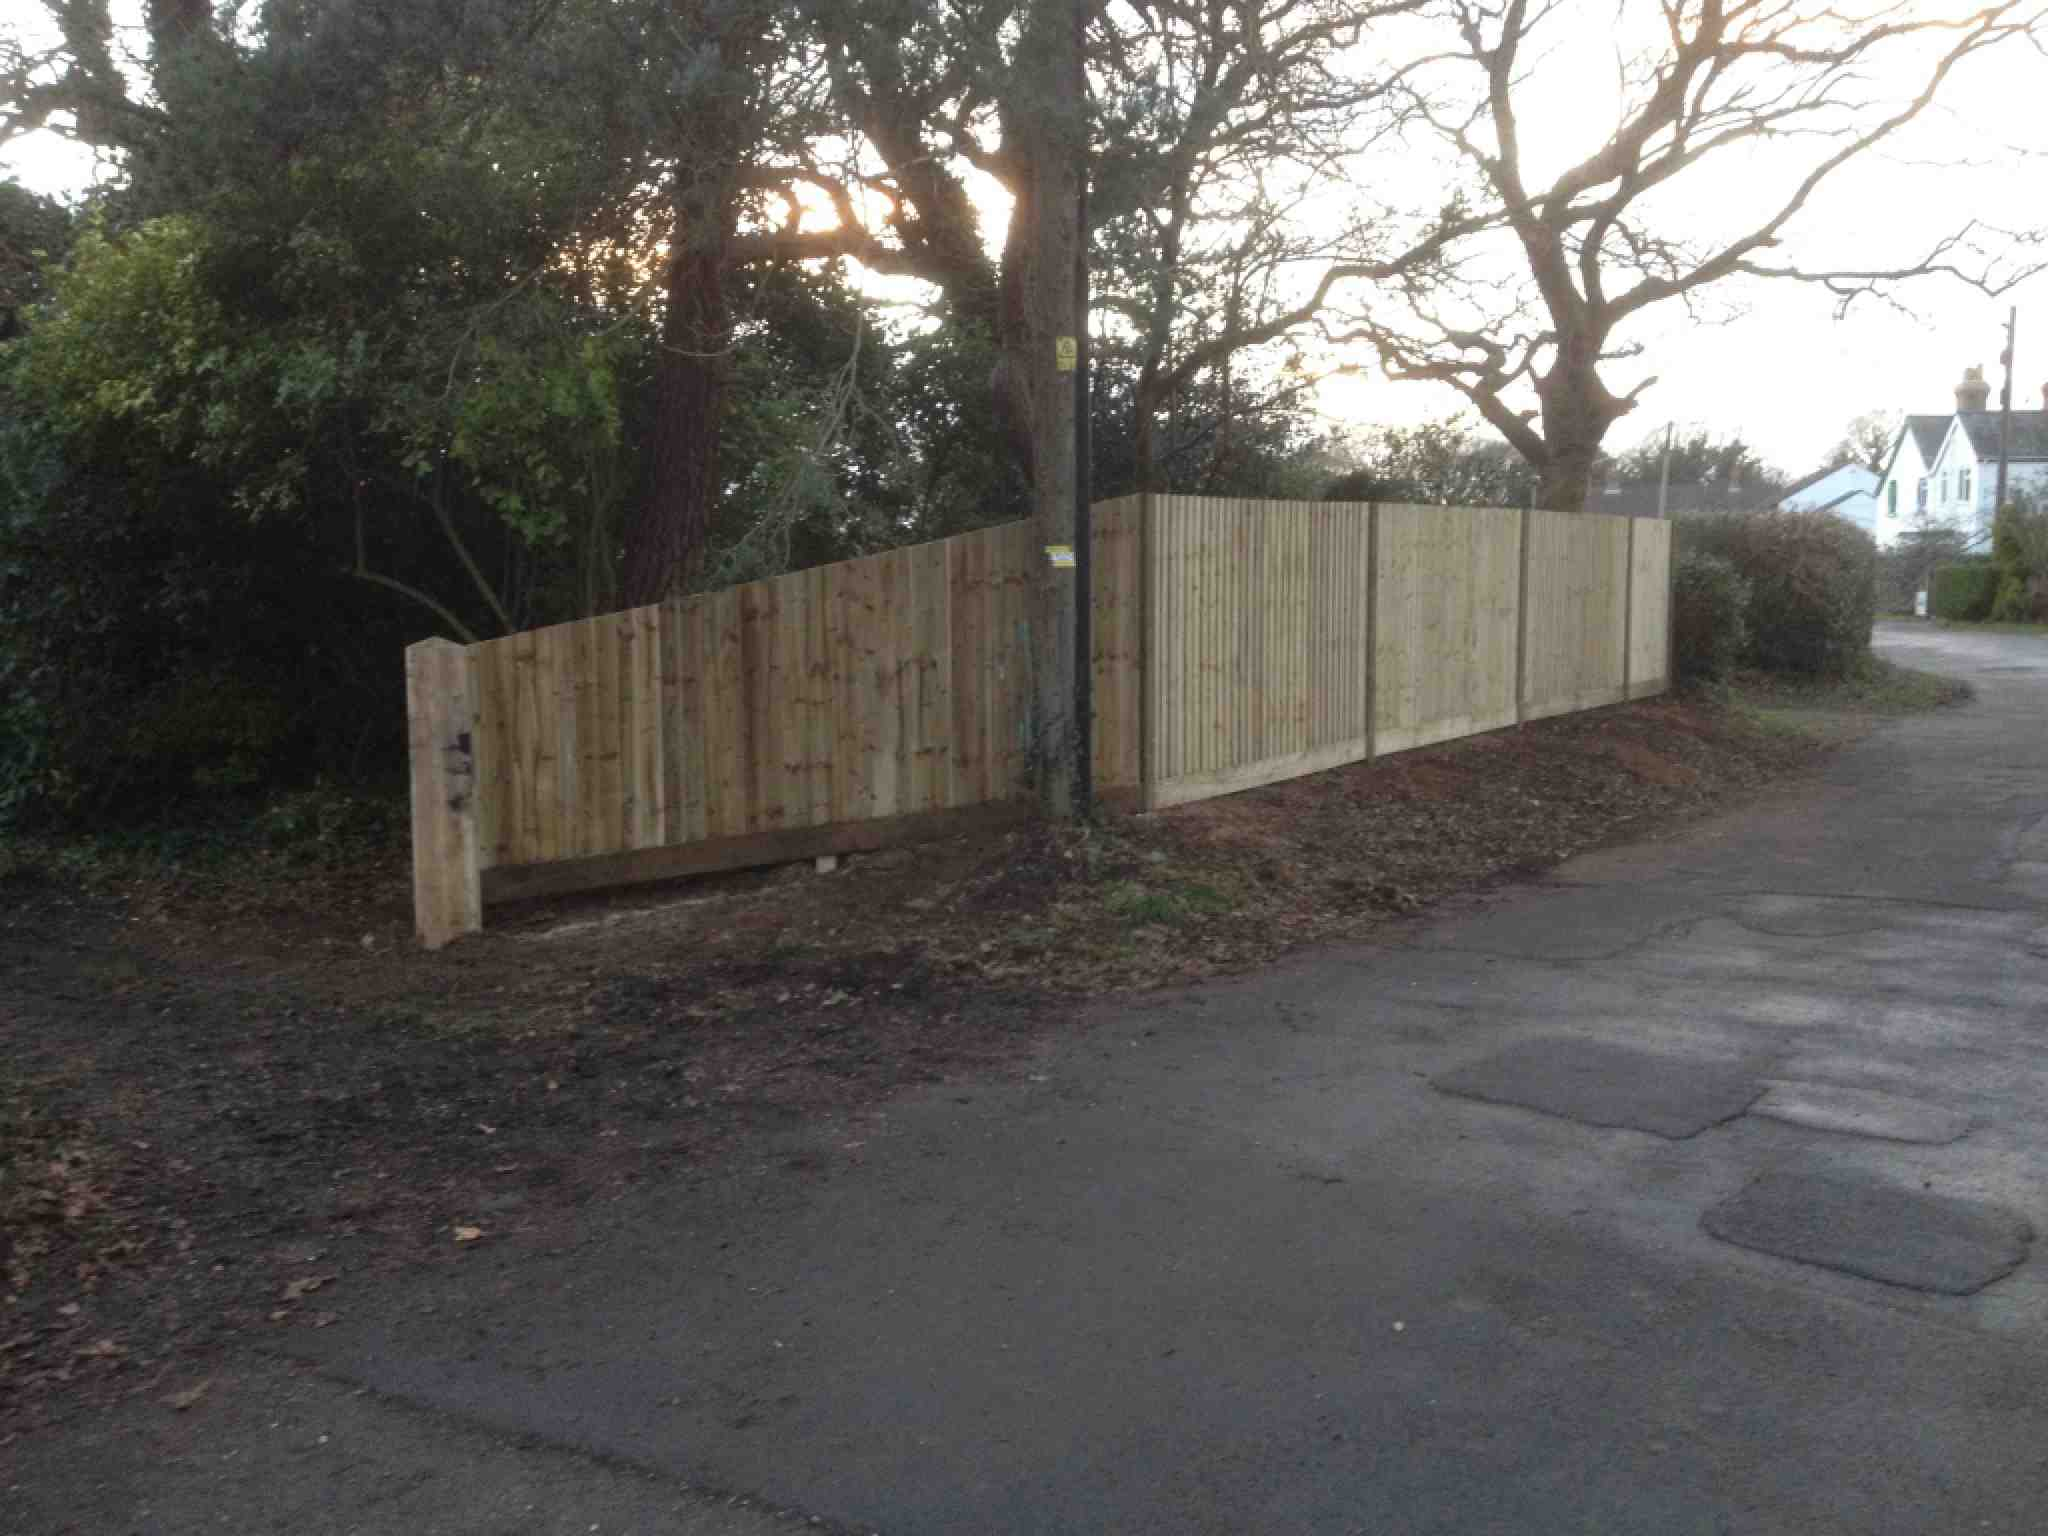 Portfolio eamples of our new fencing and gates company service in Derby 18